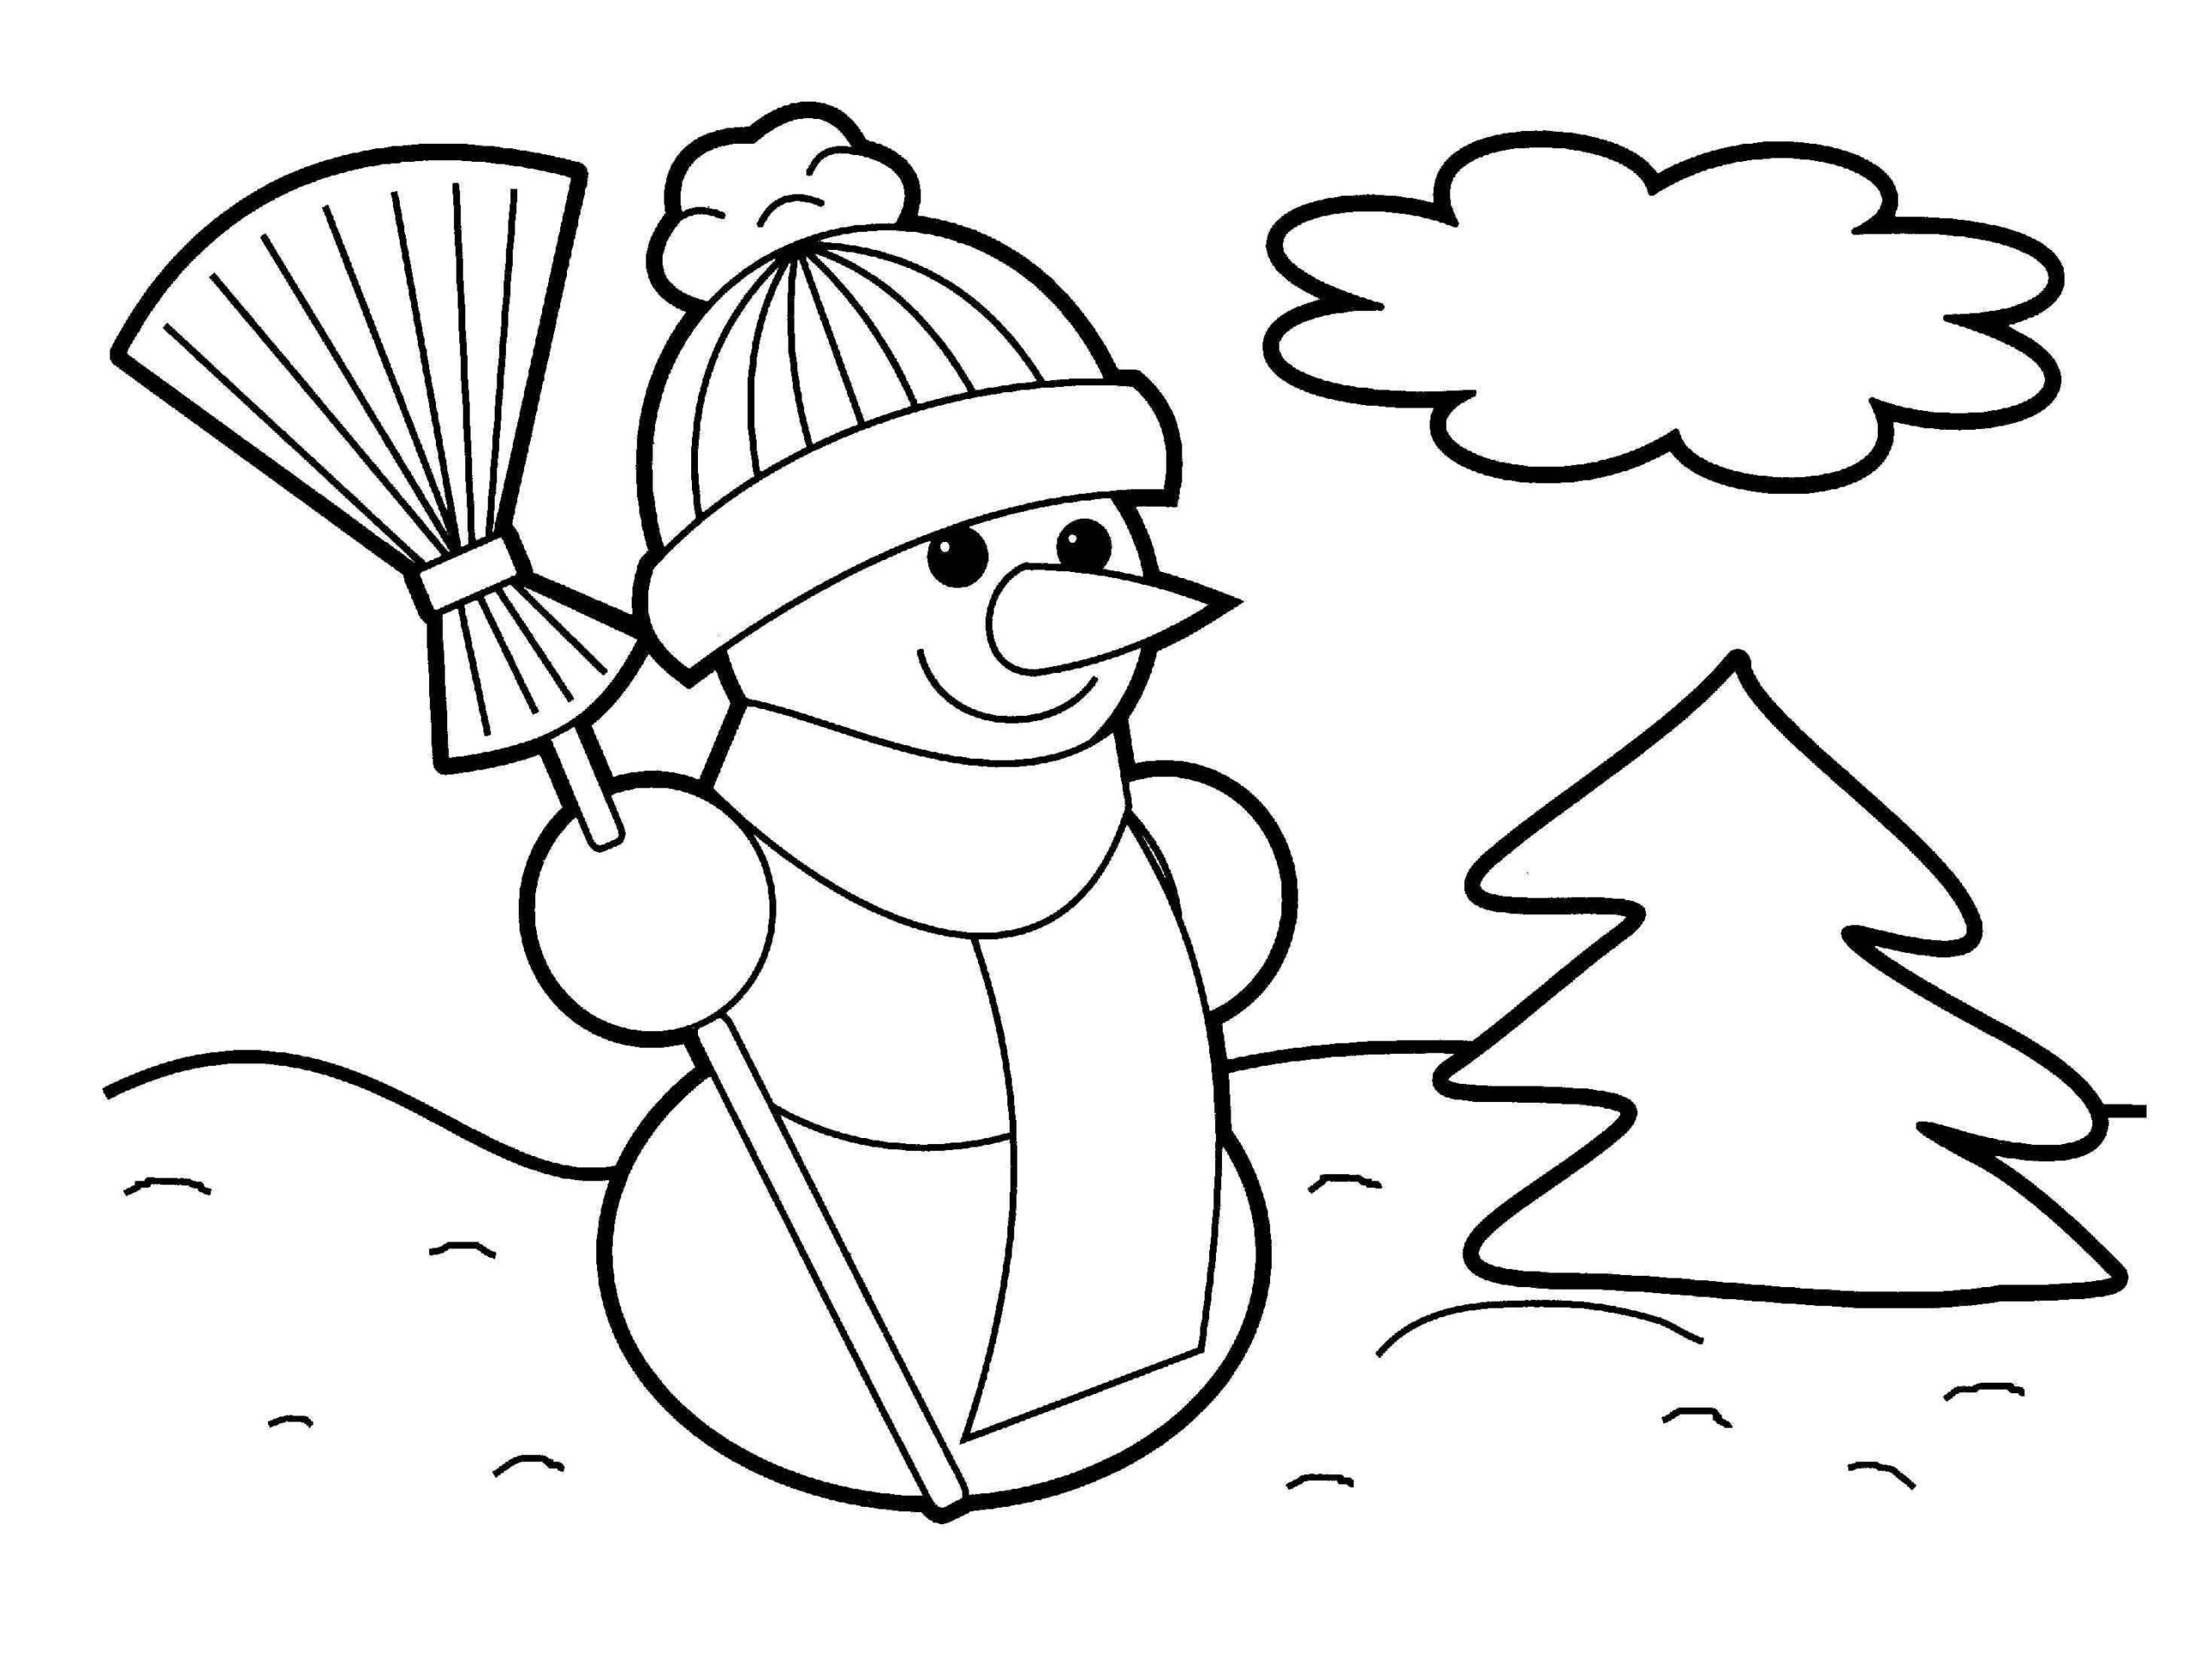 Christmas Coloring Pages - Free Large Images | Christmas